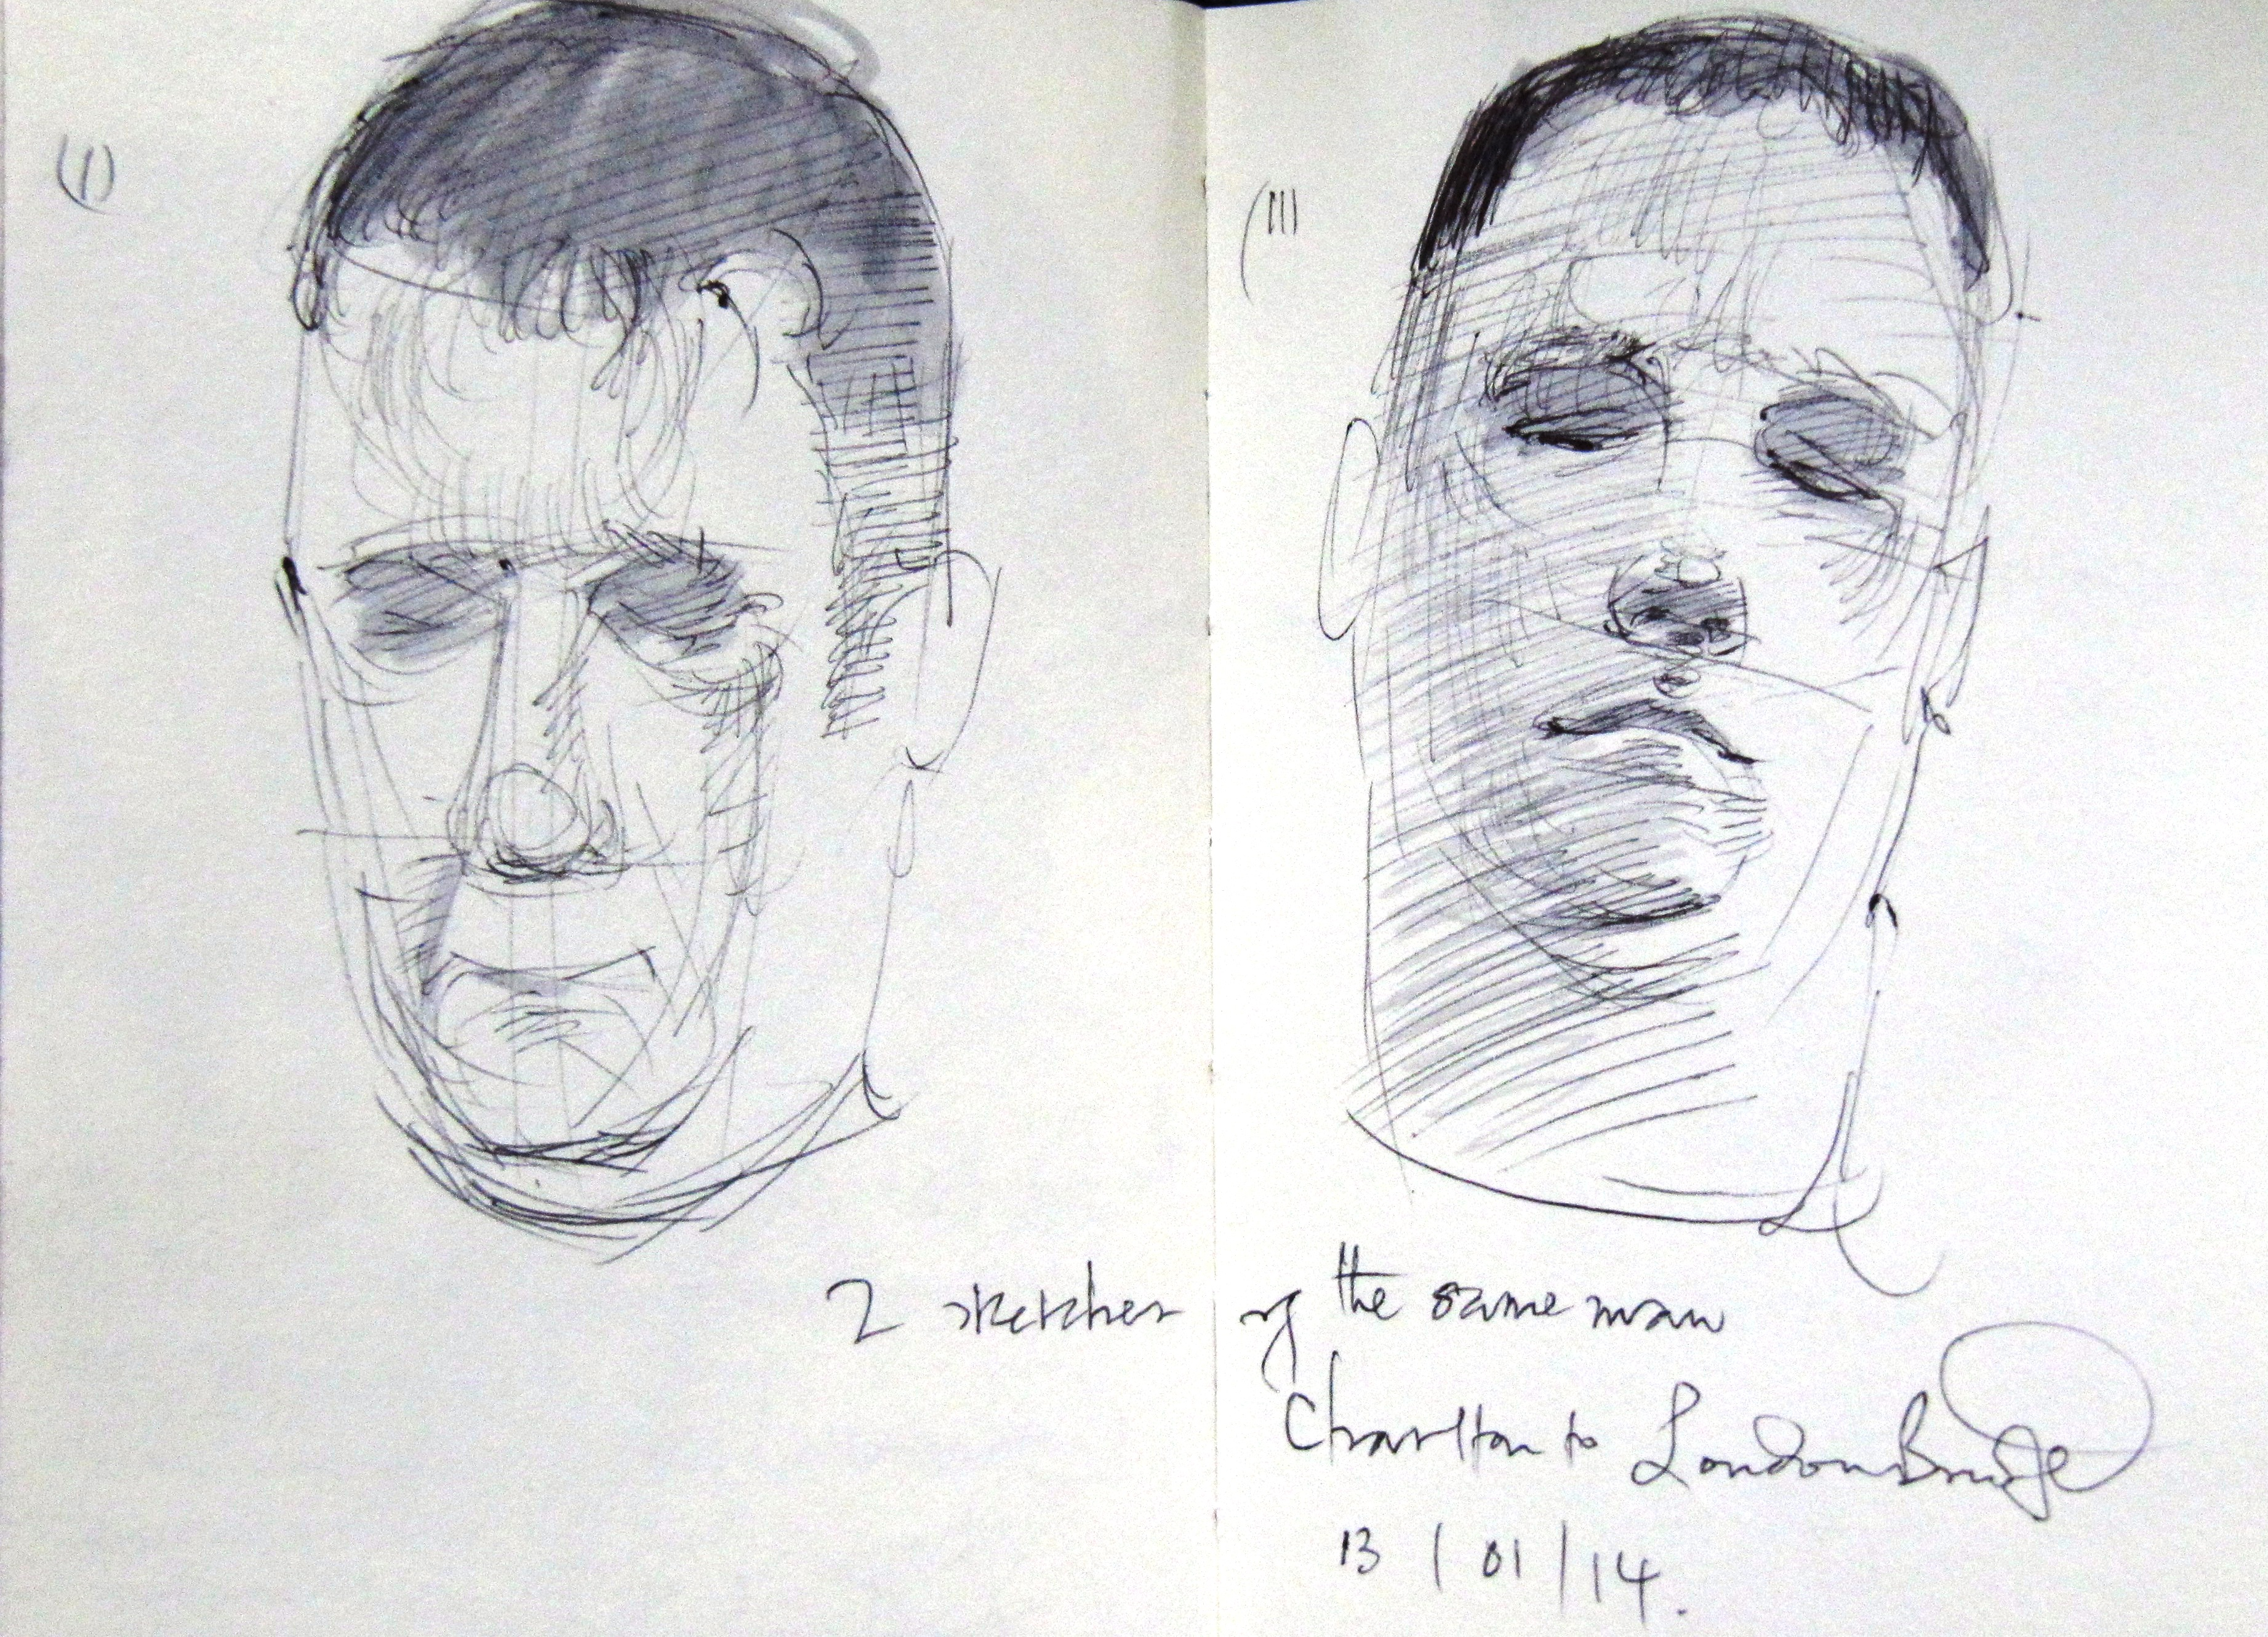 2 sketches of the same man sleepi